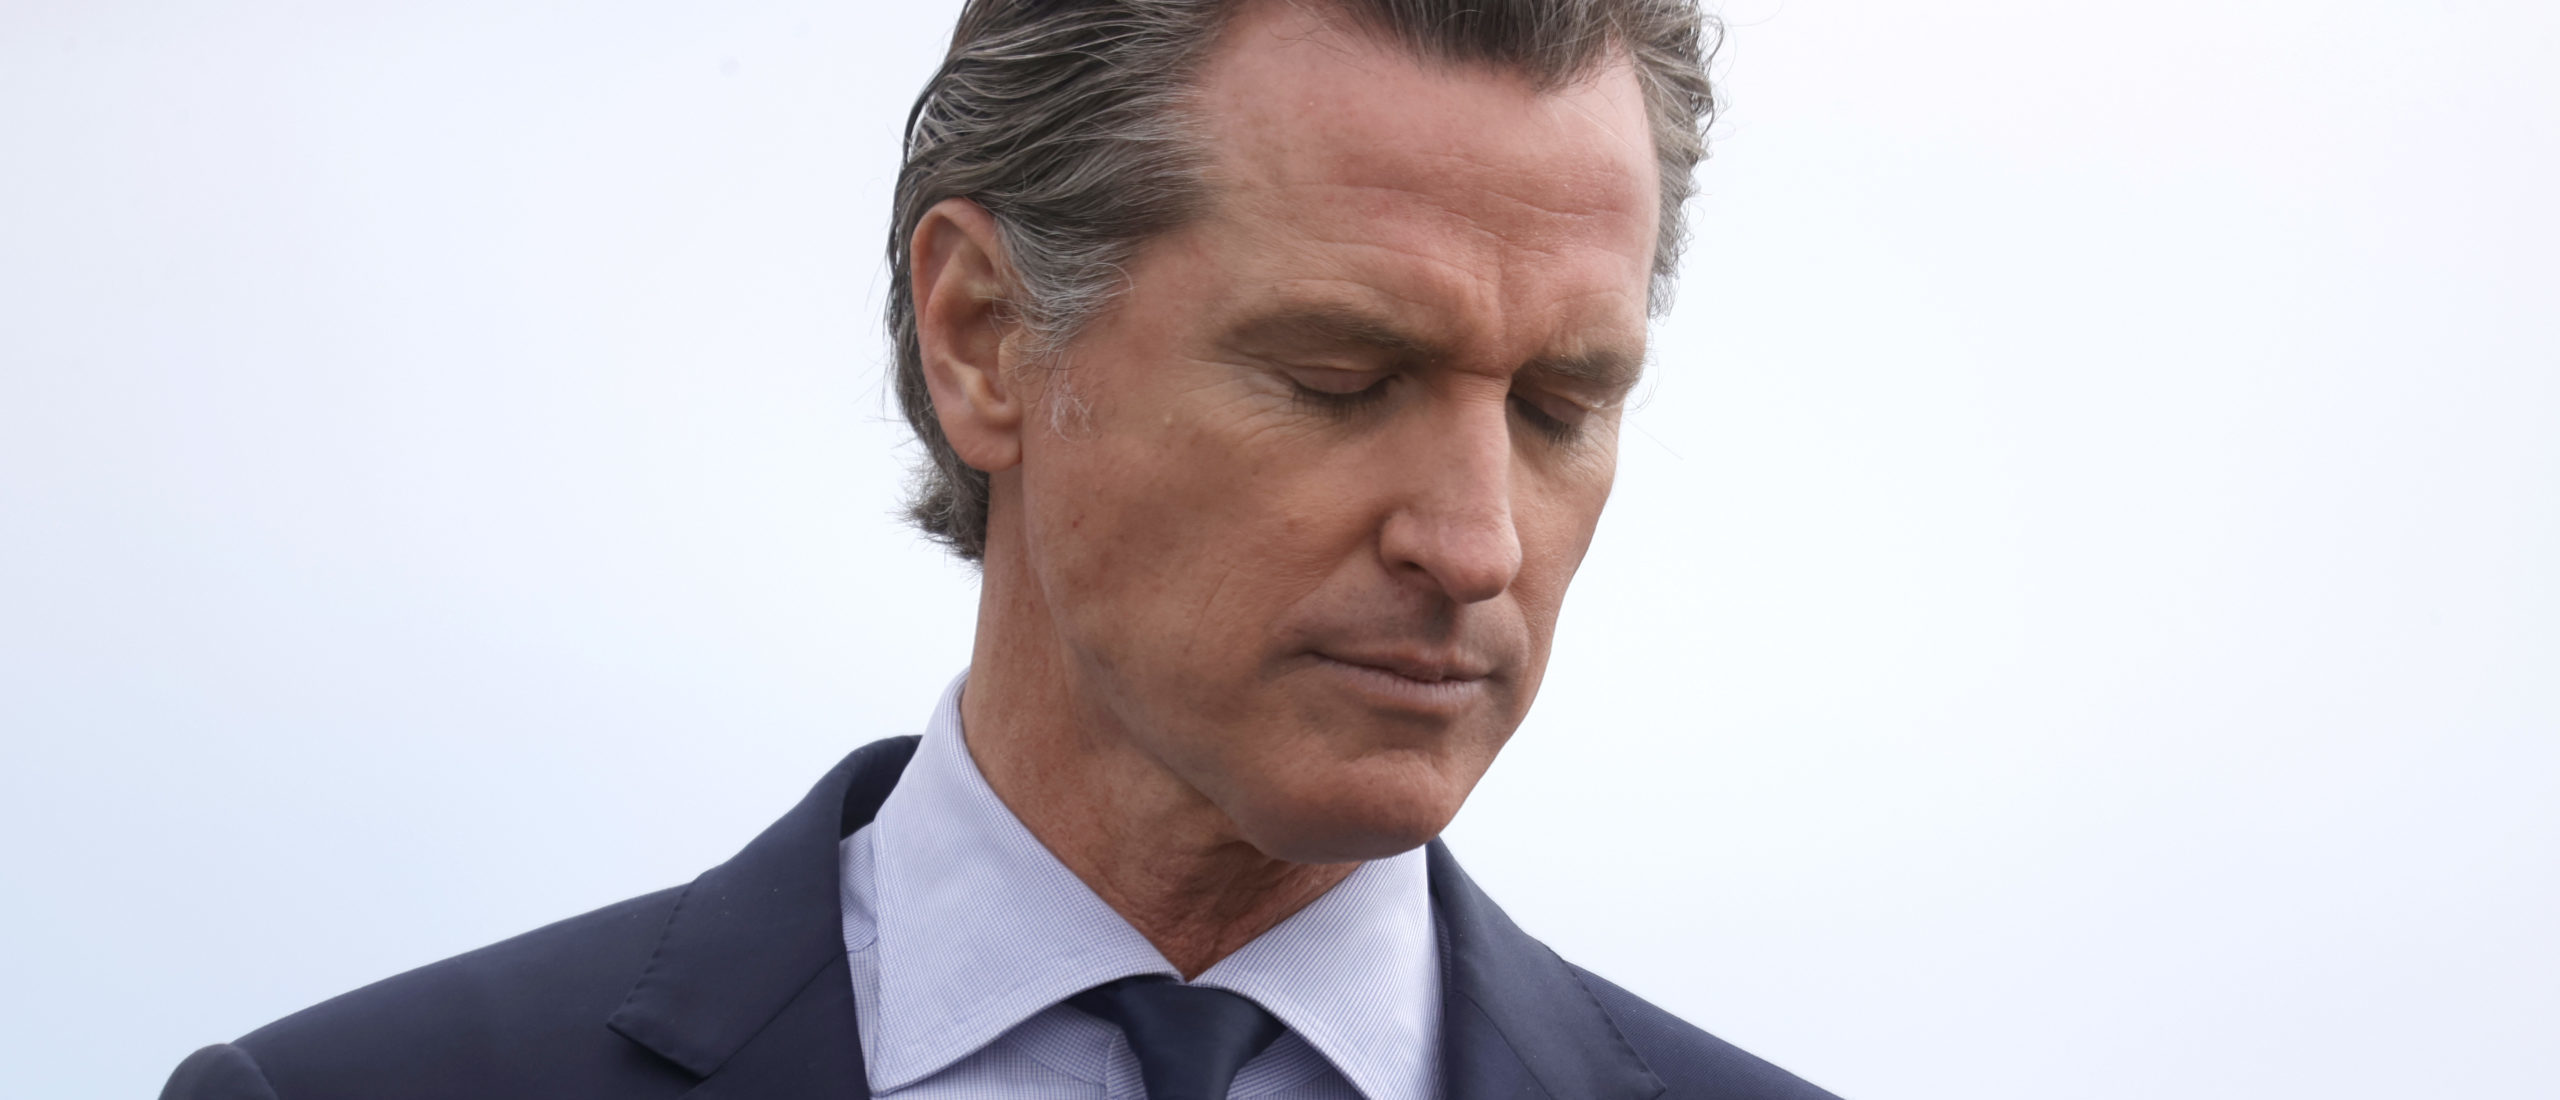 California Gov. Gavin Newsom pauses as he speaks during a news conference after touring the vaccination clinic at City College of San Francisco on April 06, 2021 in San Francisco, California. (Photo by Justin Sullivan/Getty Images)